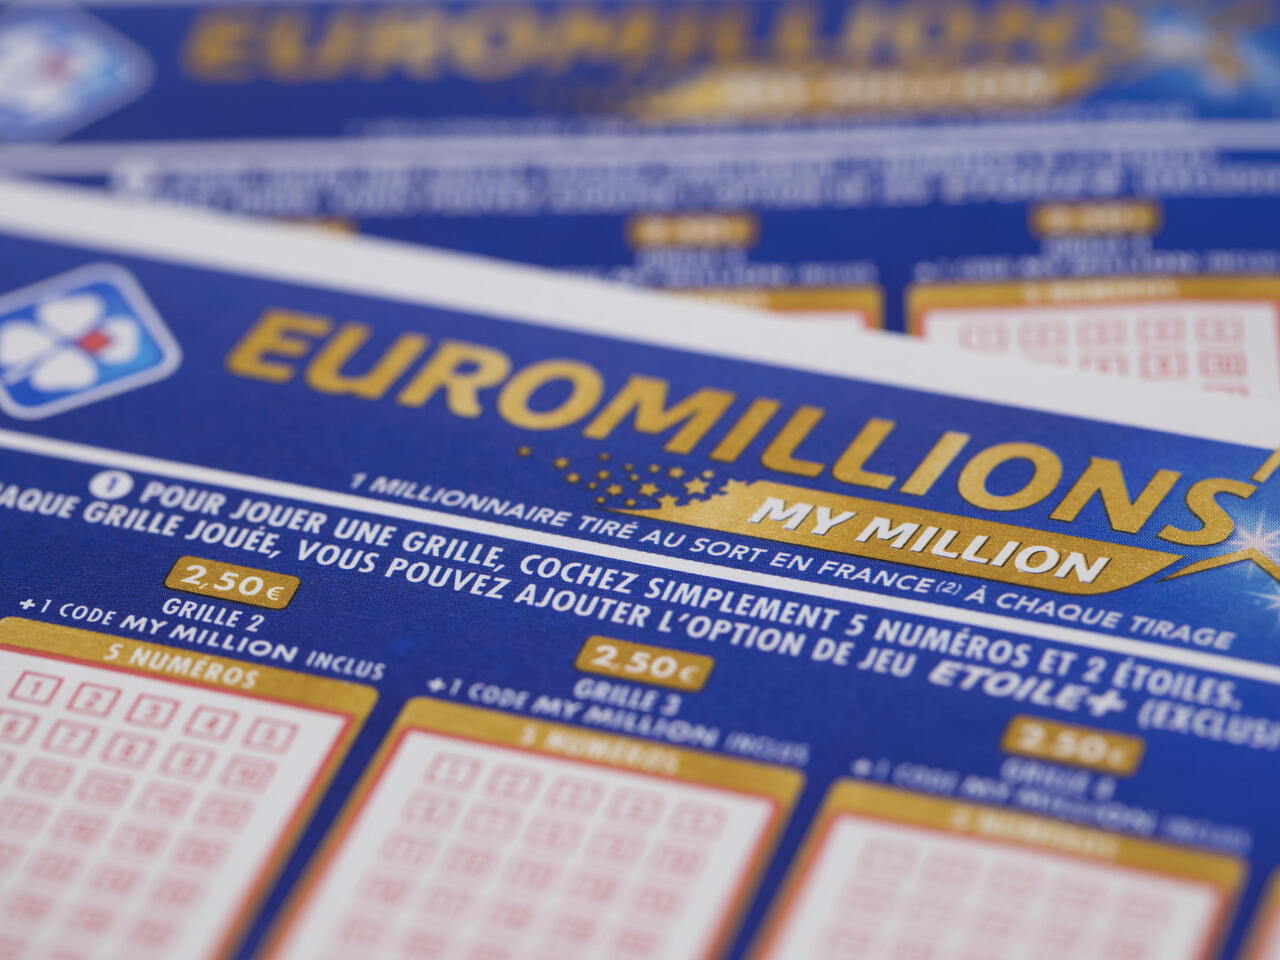 French Winner Hits 200 Million Euro Lottery Jackpot France 24 These sentences come from external sources and may not be accurate. french winner hits 200 million euro